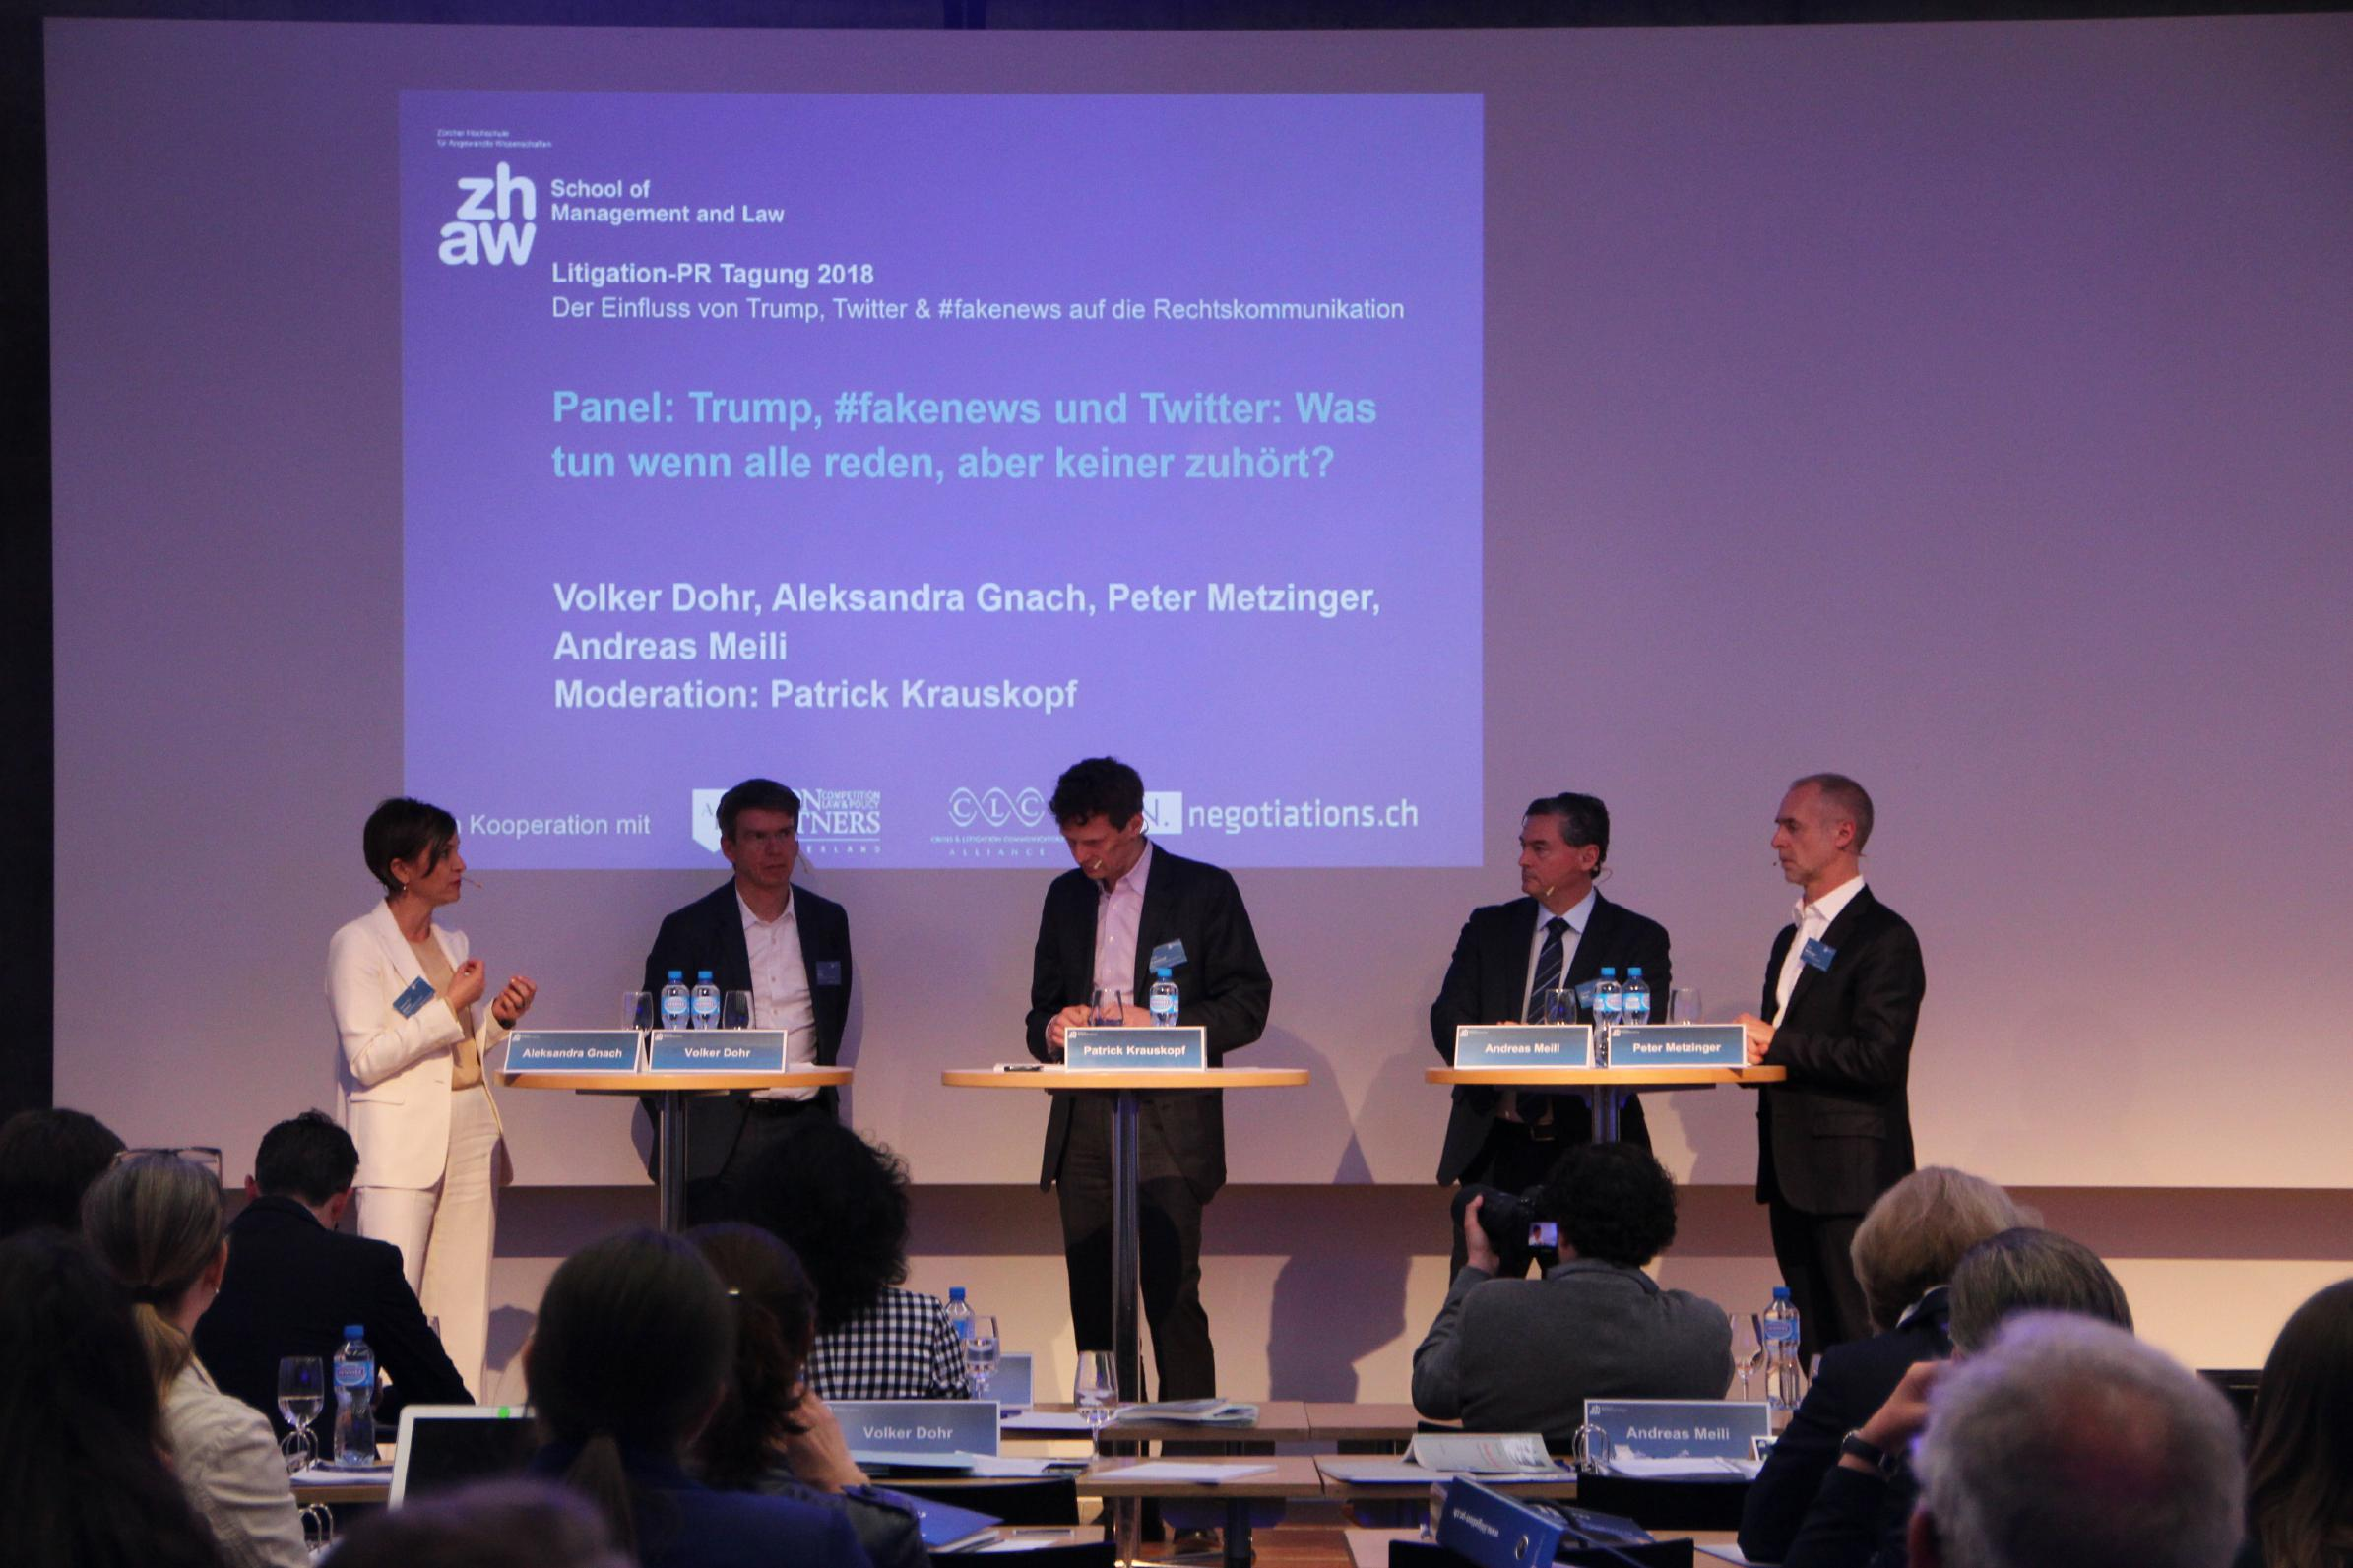 Das Panel der Litigation-PR-Tagung 2018